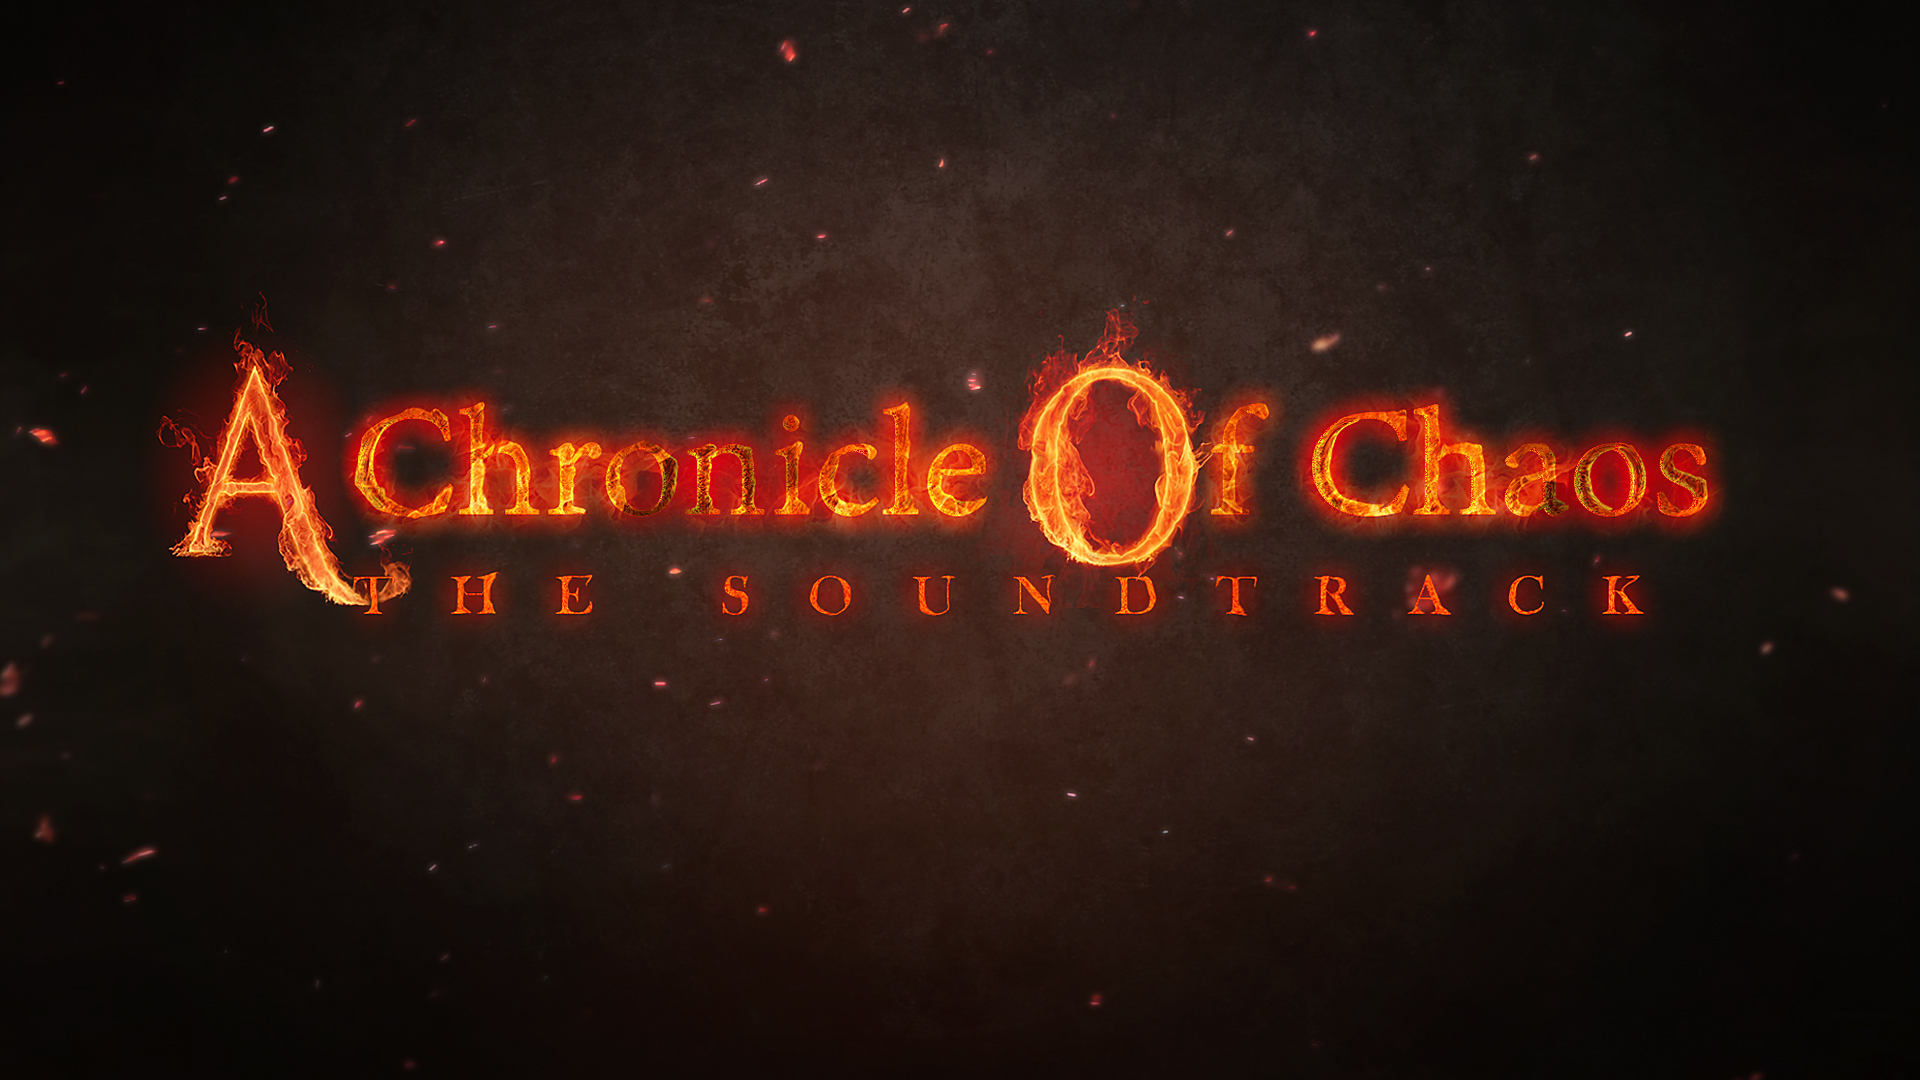 a-chronicle-of-chaos-soundtrack